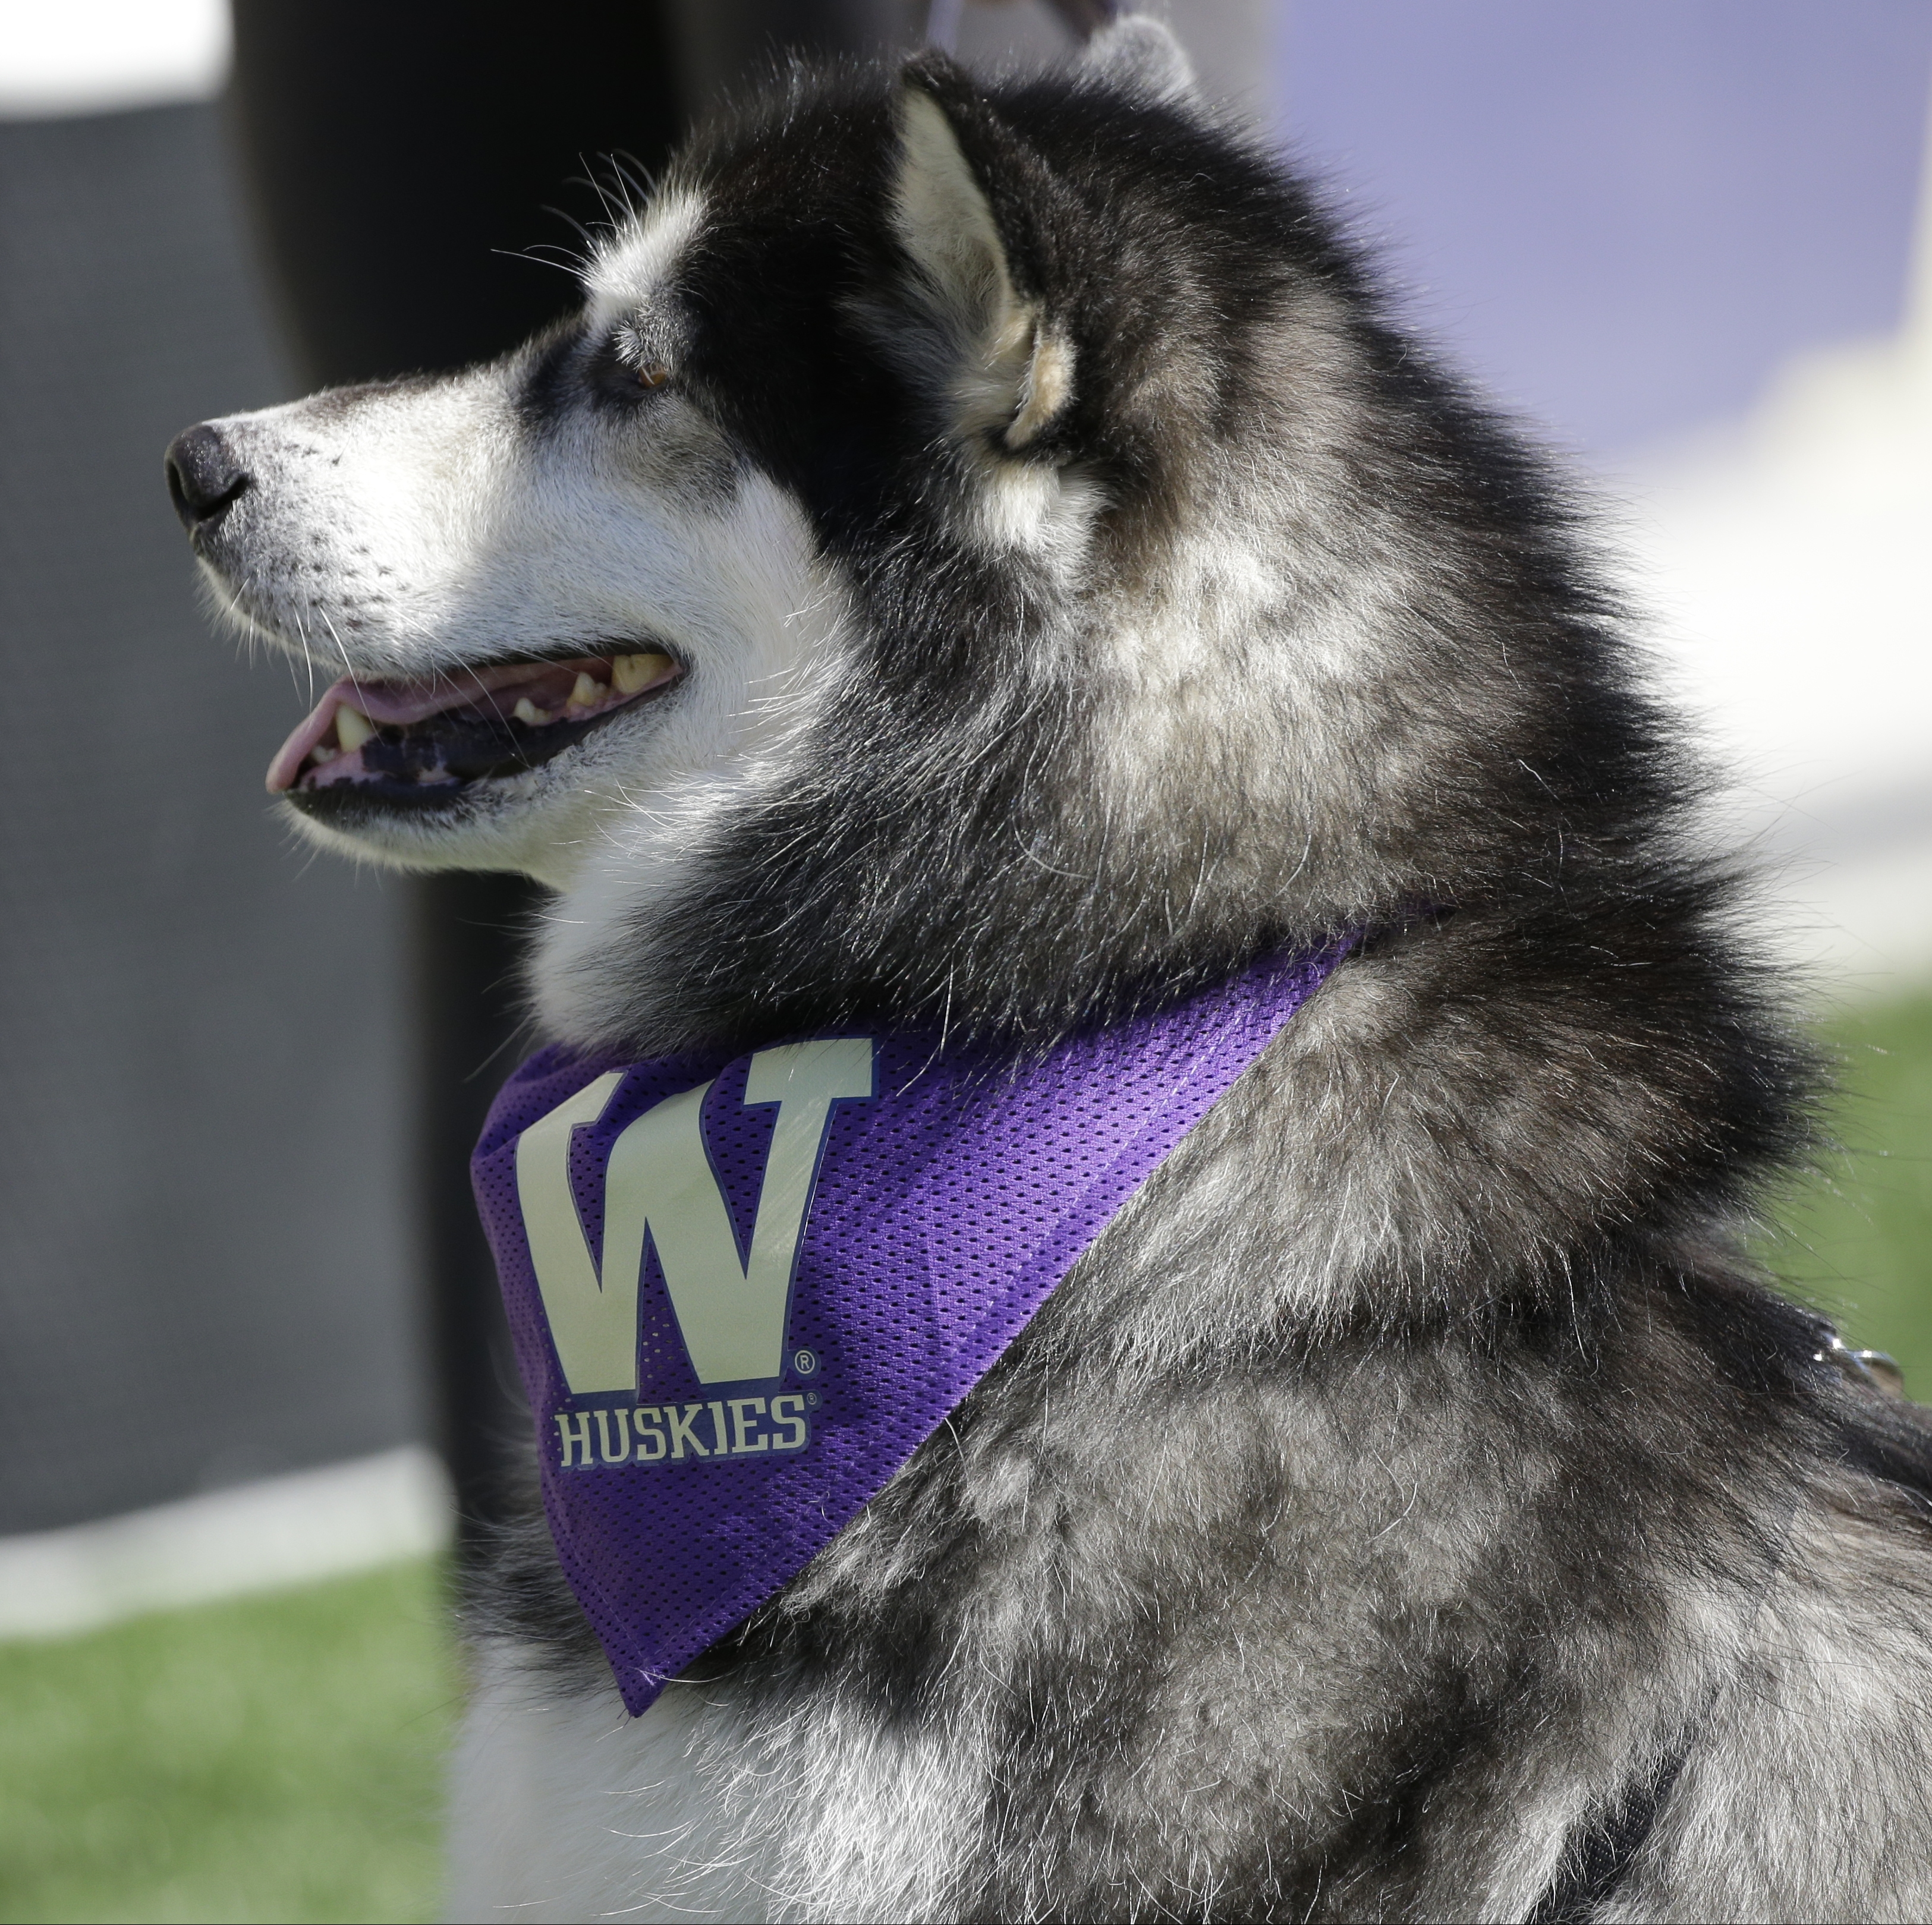 The Washington Huskies mascot is shown during an NCAA college football 3250x3239